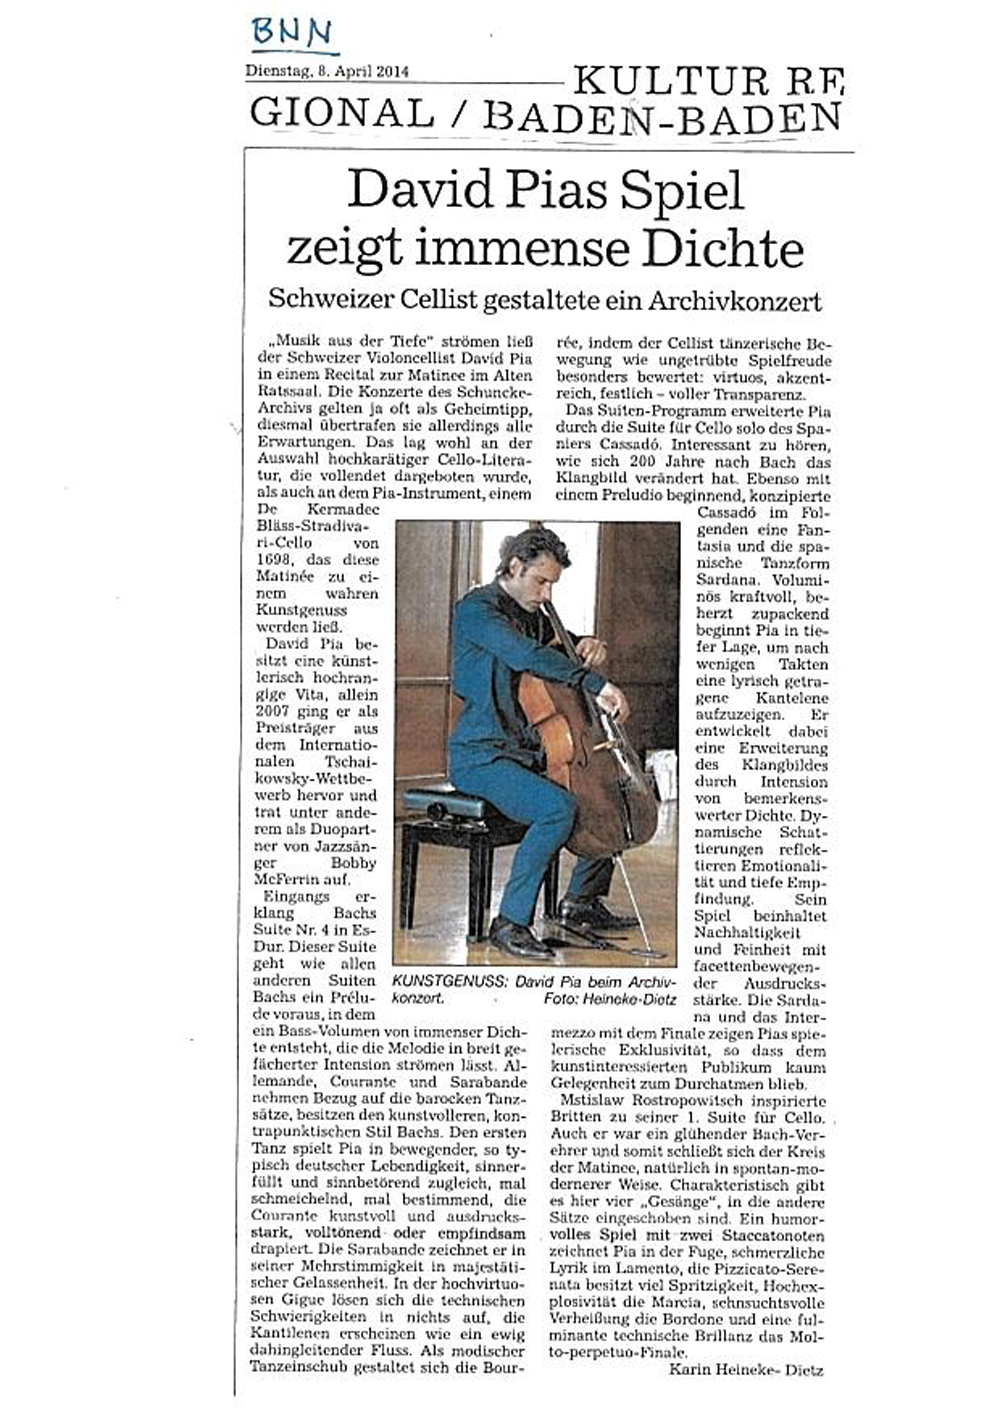 Recital (Solo) mit David Pia